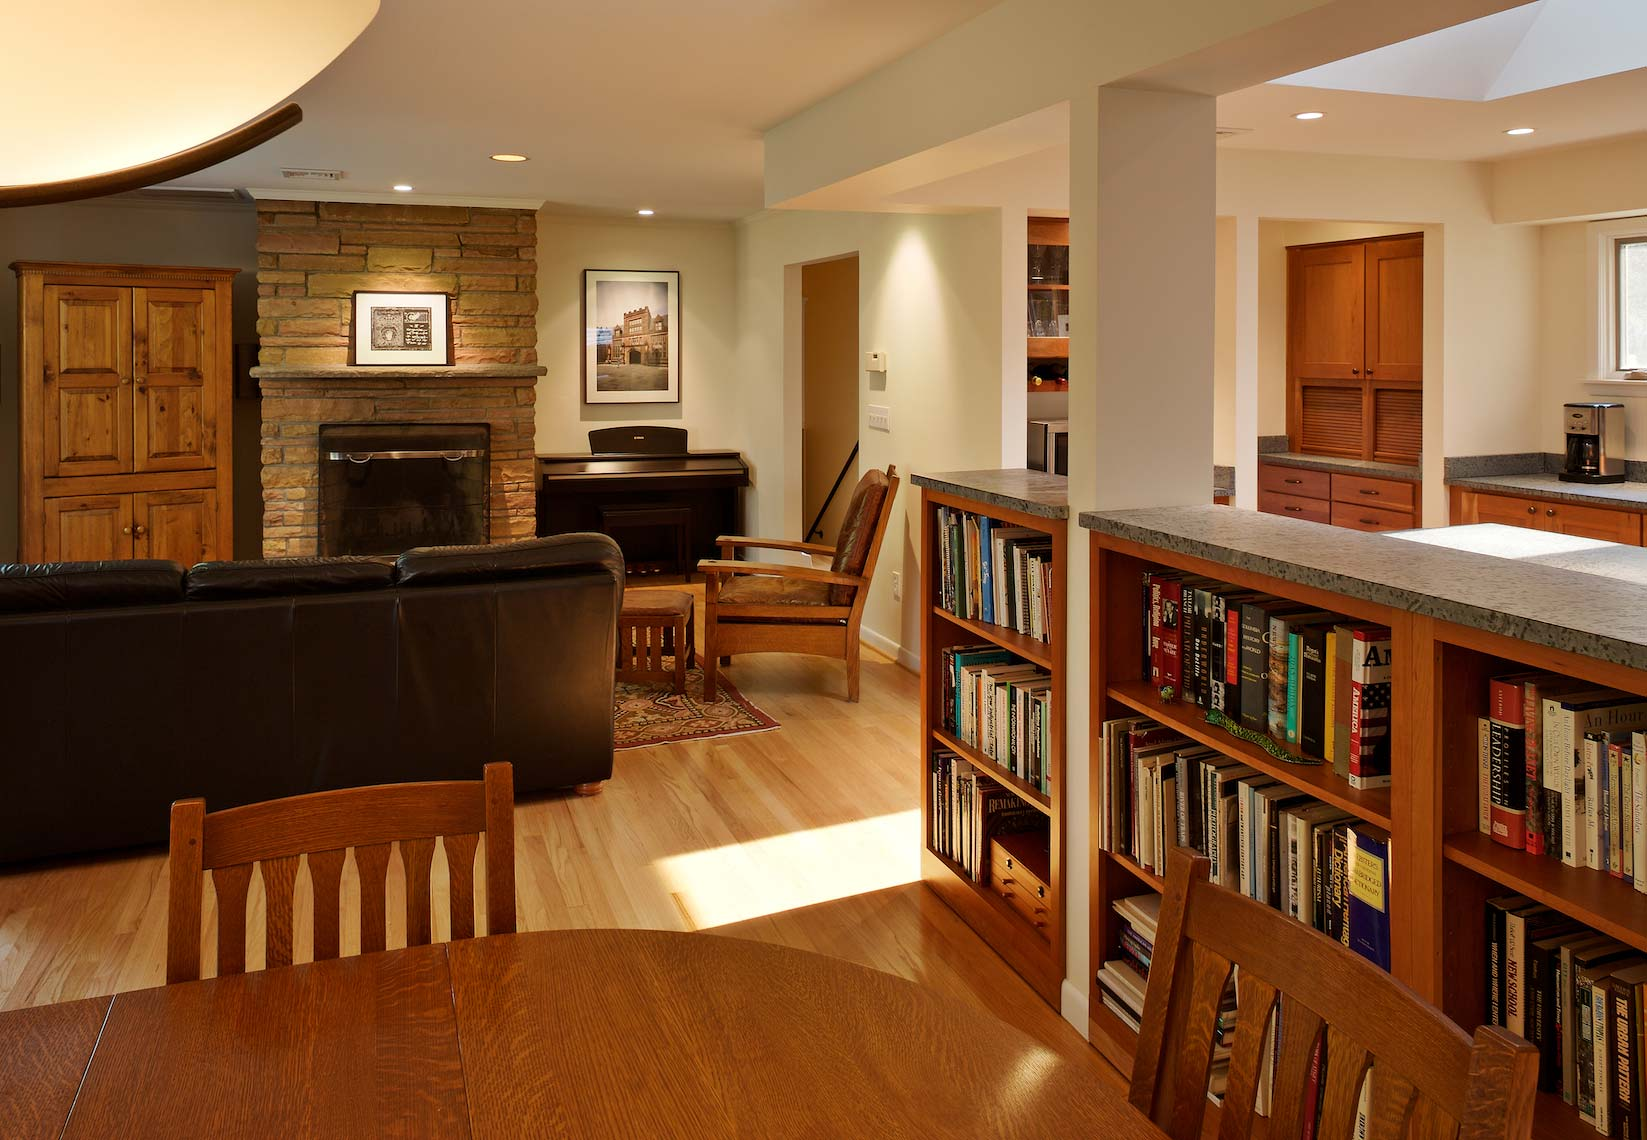 Classic Split-Level Renovation with a Modern Twist - Princeton, NJ - Dining & Living Room